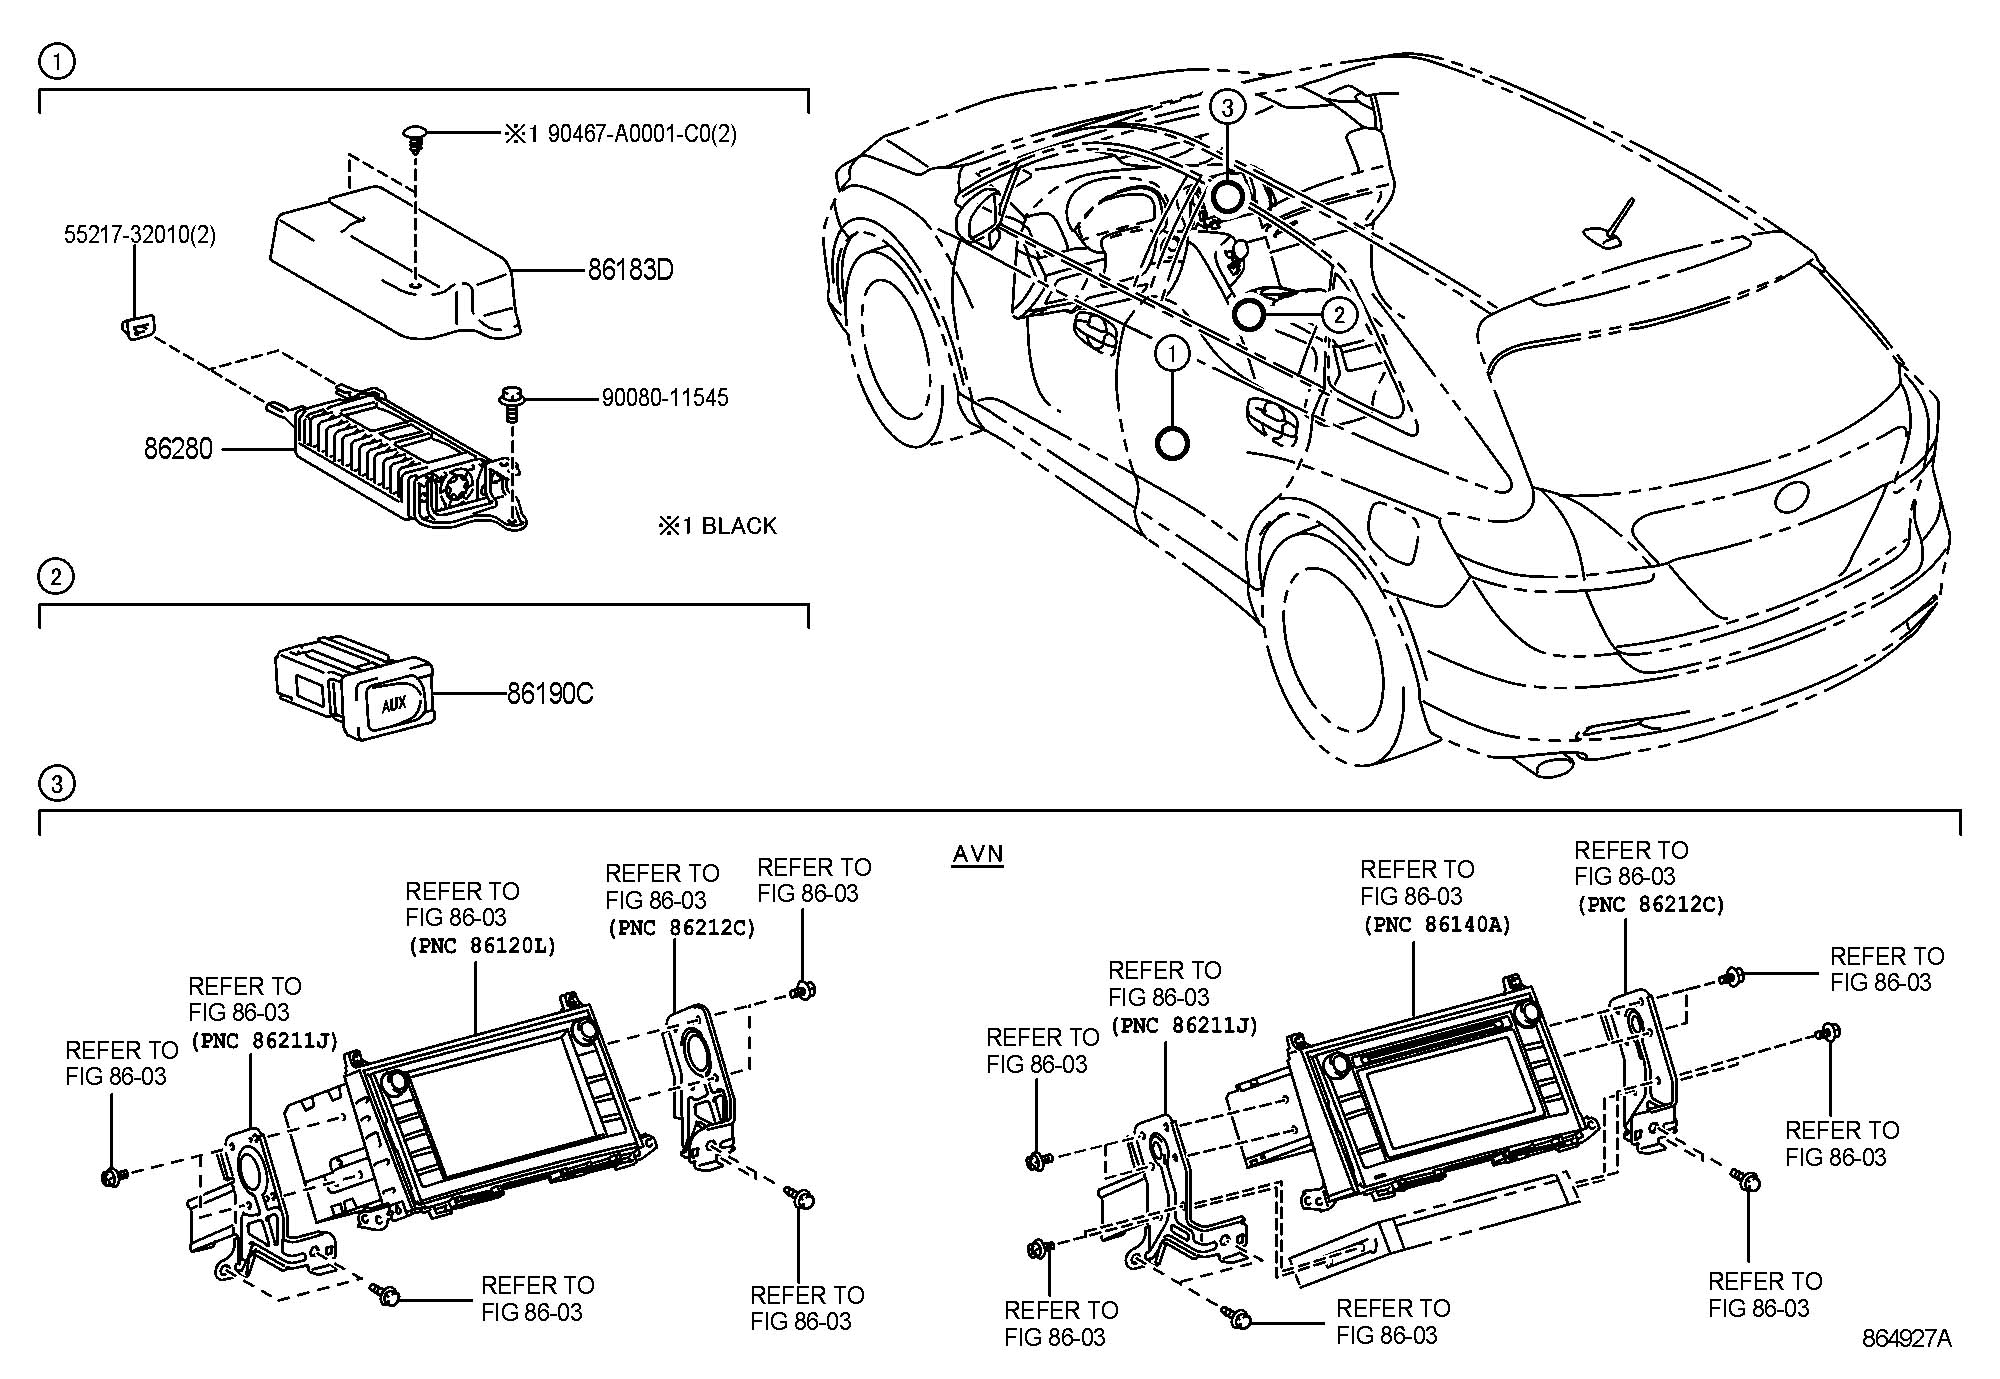 Toyota Venza Adapter assembly, stereo jack, no.1. Adapter